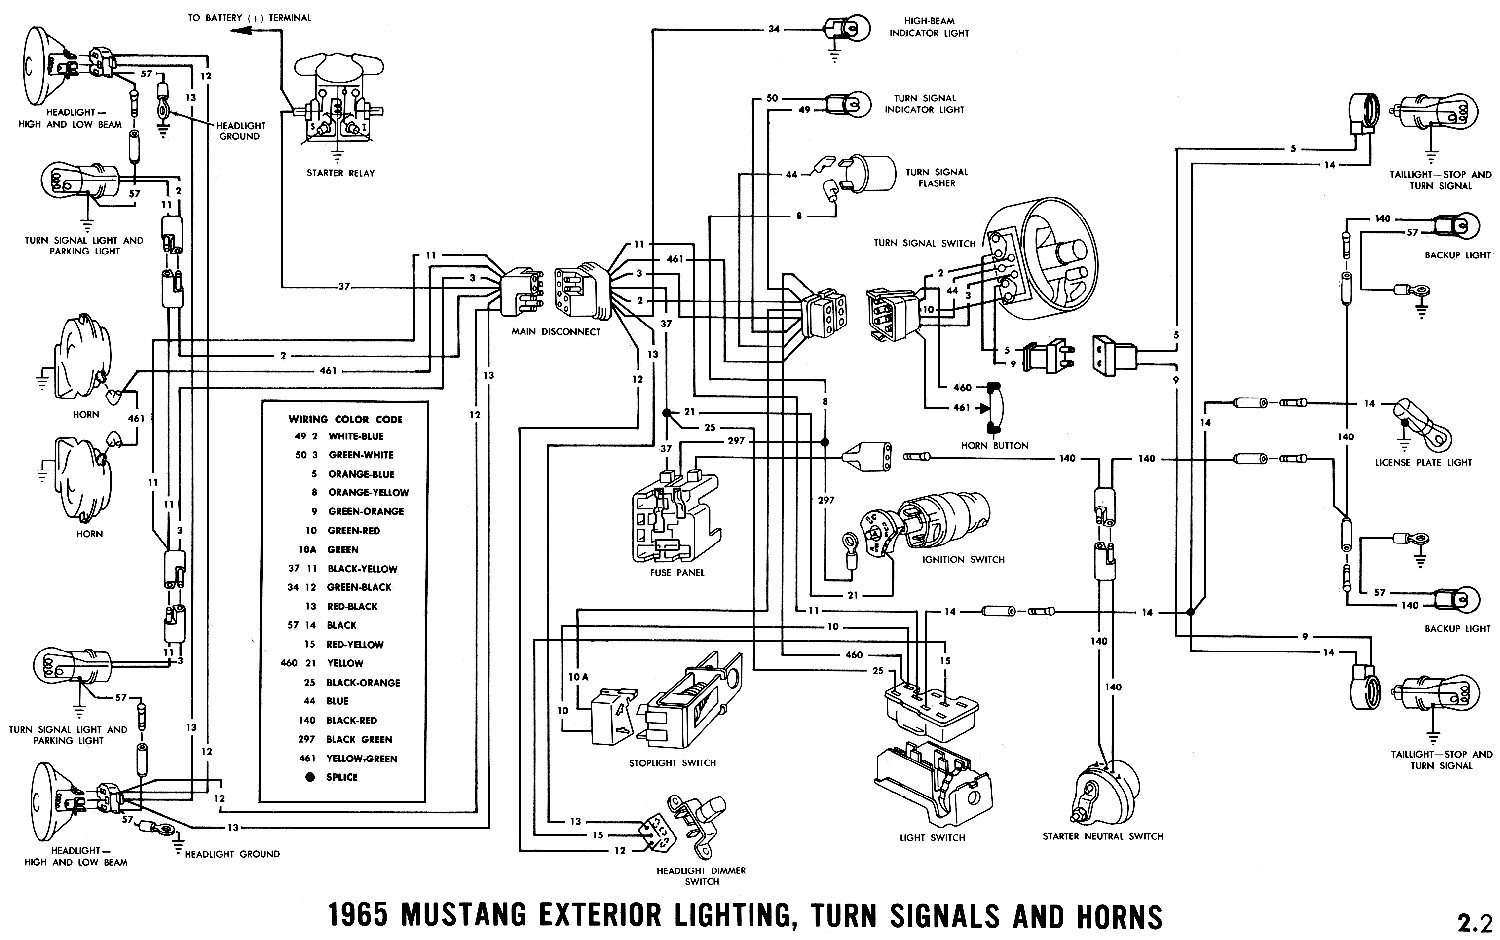 Mustang Turn Signal Wiring Diagram Also 1966 Under Dash Vw Rebel Harness Light Signals And Horns Diagrams Of Ford Exterior